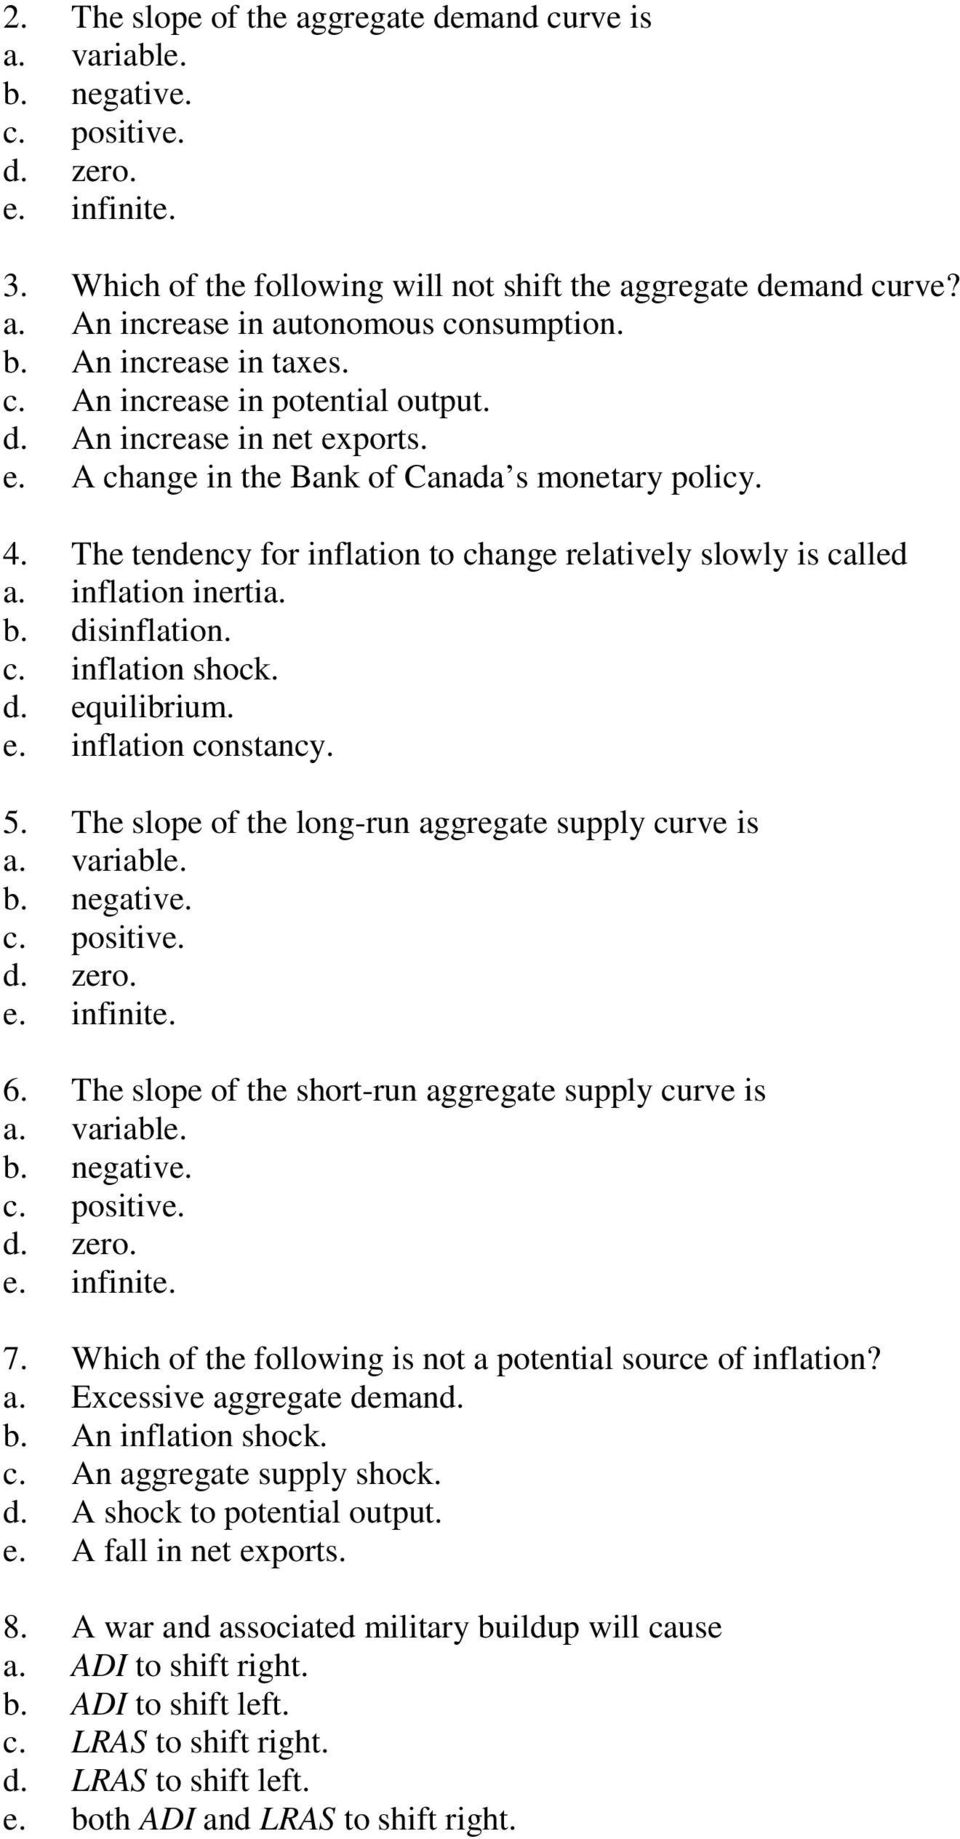 The tendency for inflation to change relatively slowly is called a. inflation inertia. b. disinflation. c. inflation shock. d. equilibrium. e. inflation constancy. 5.